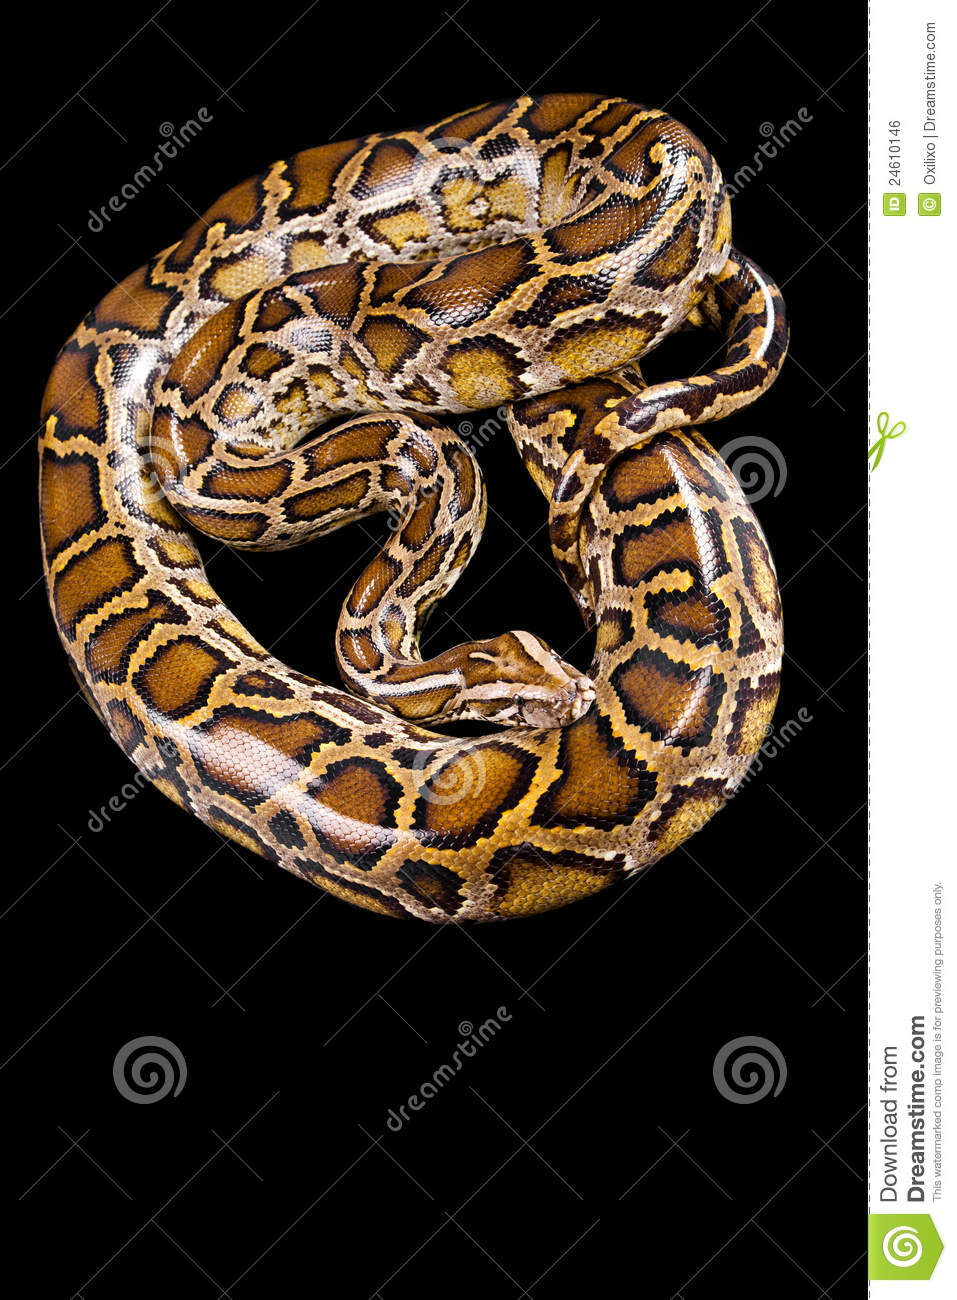 Burmese python isolated on black